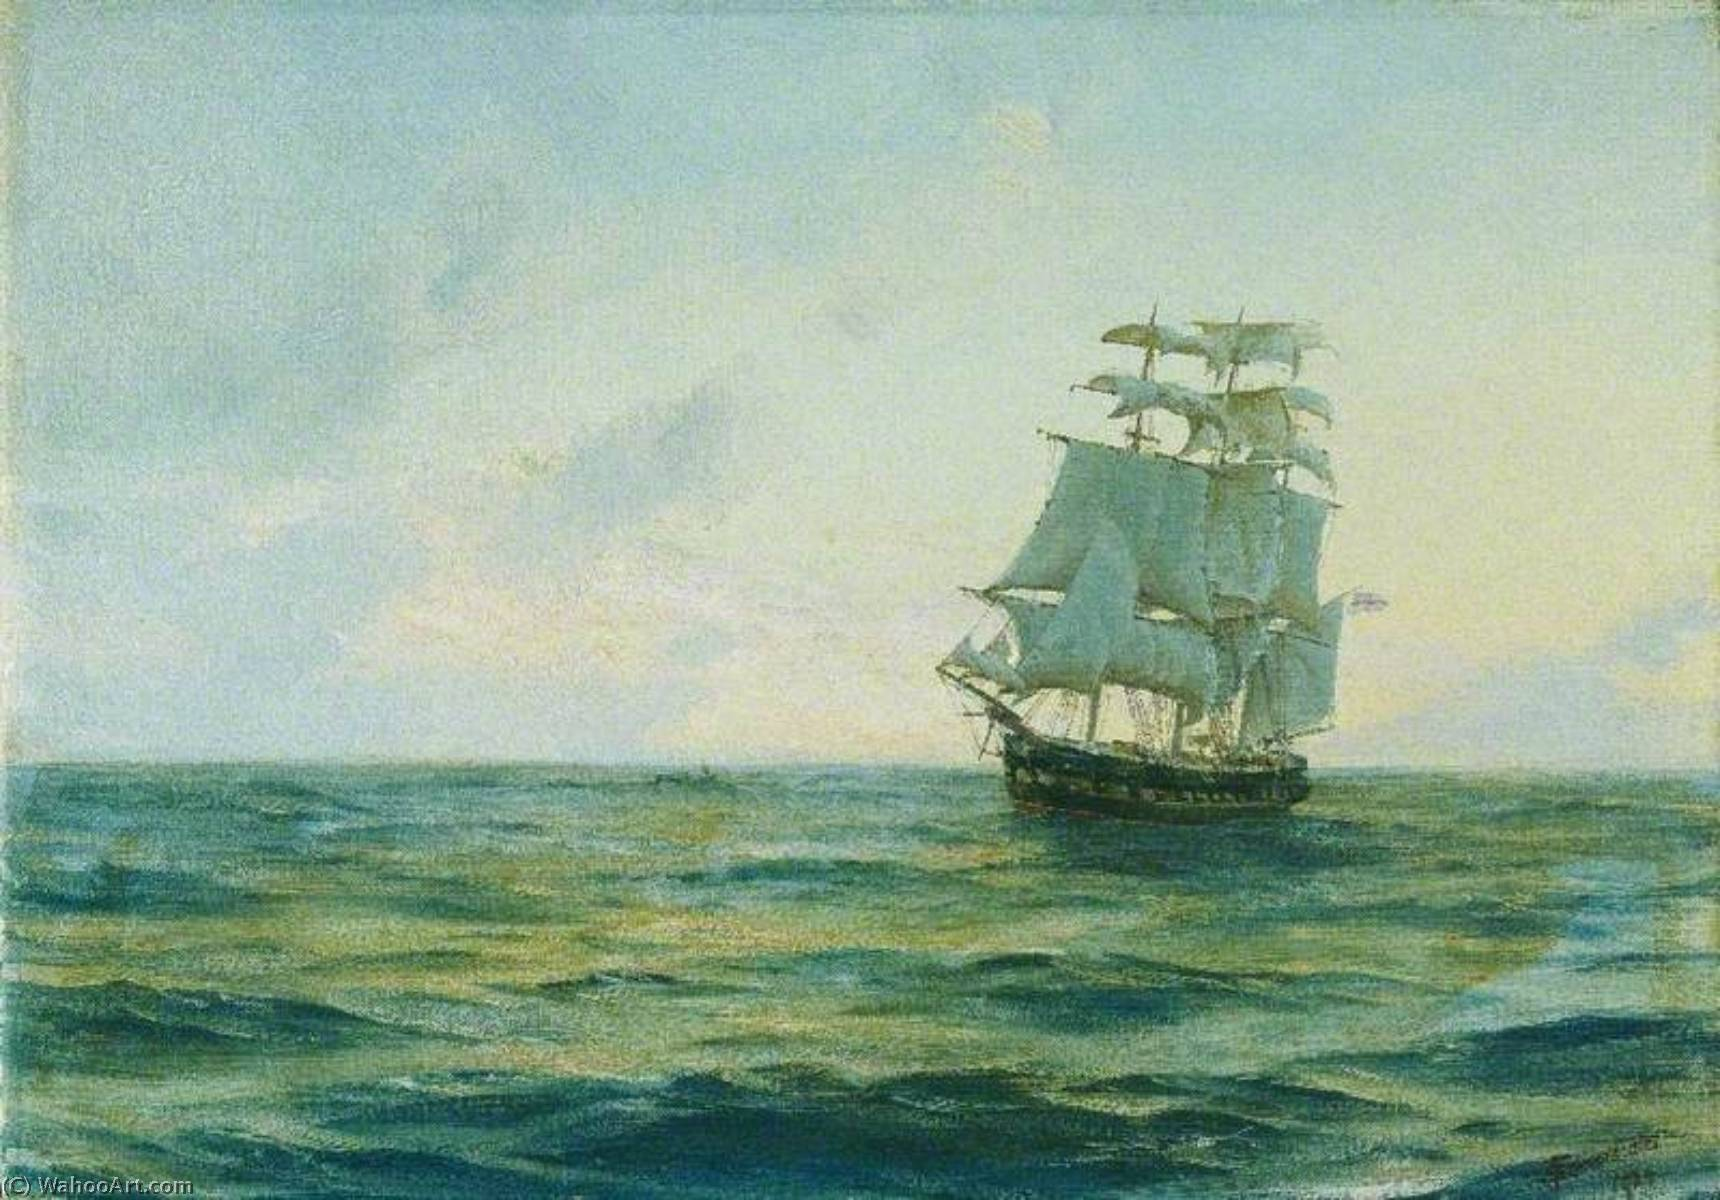 HMS 'Clio', 油画 通过 Thomas Jacques Somerscales (1842-1927)